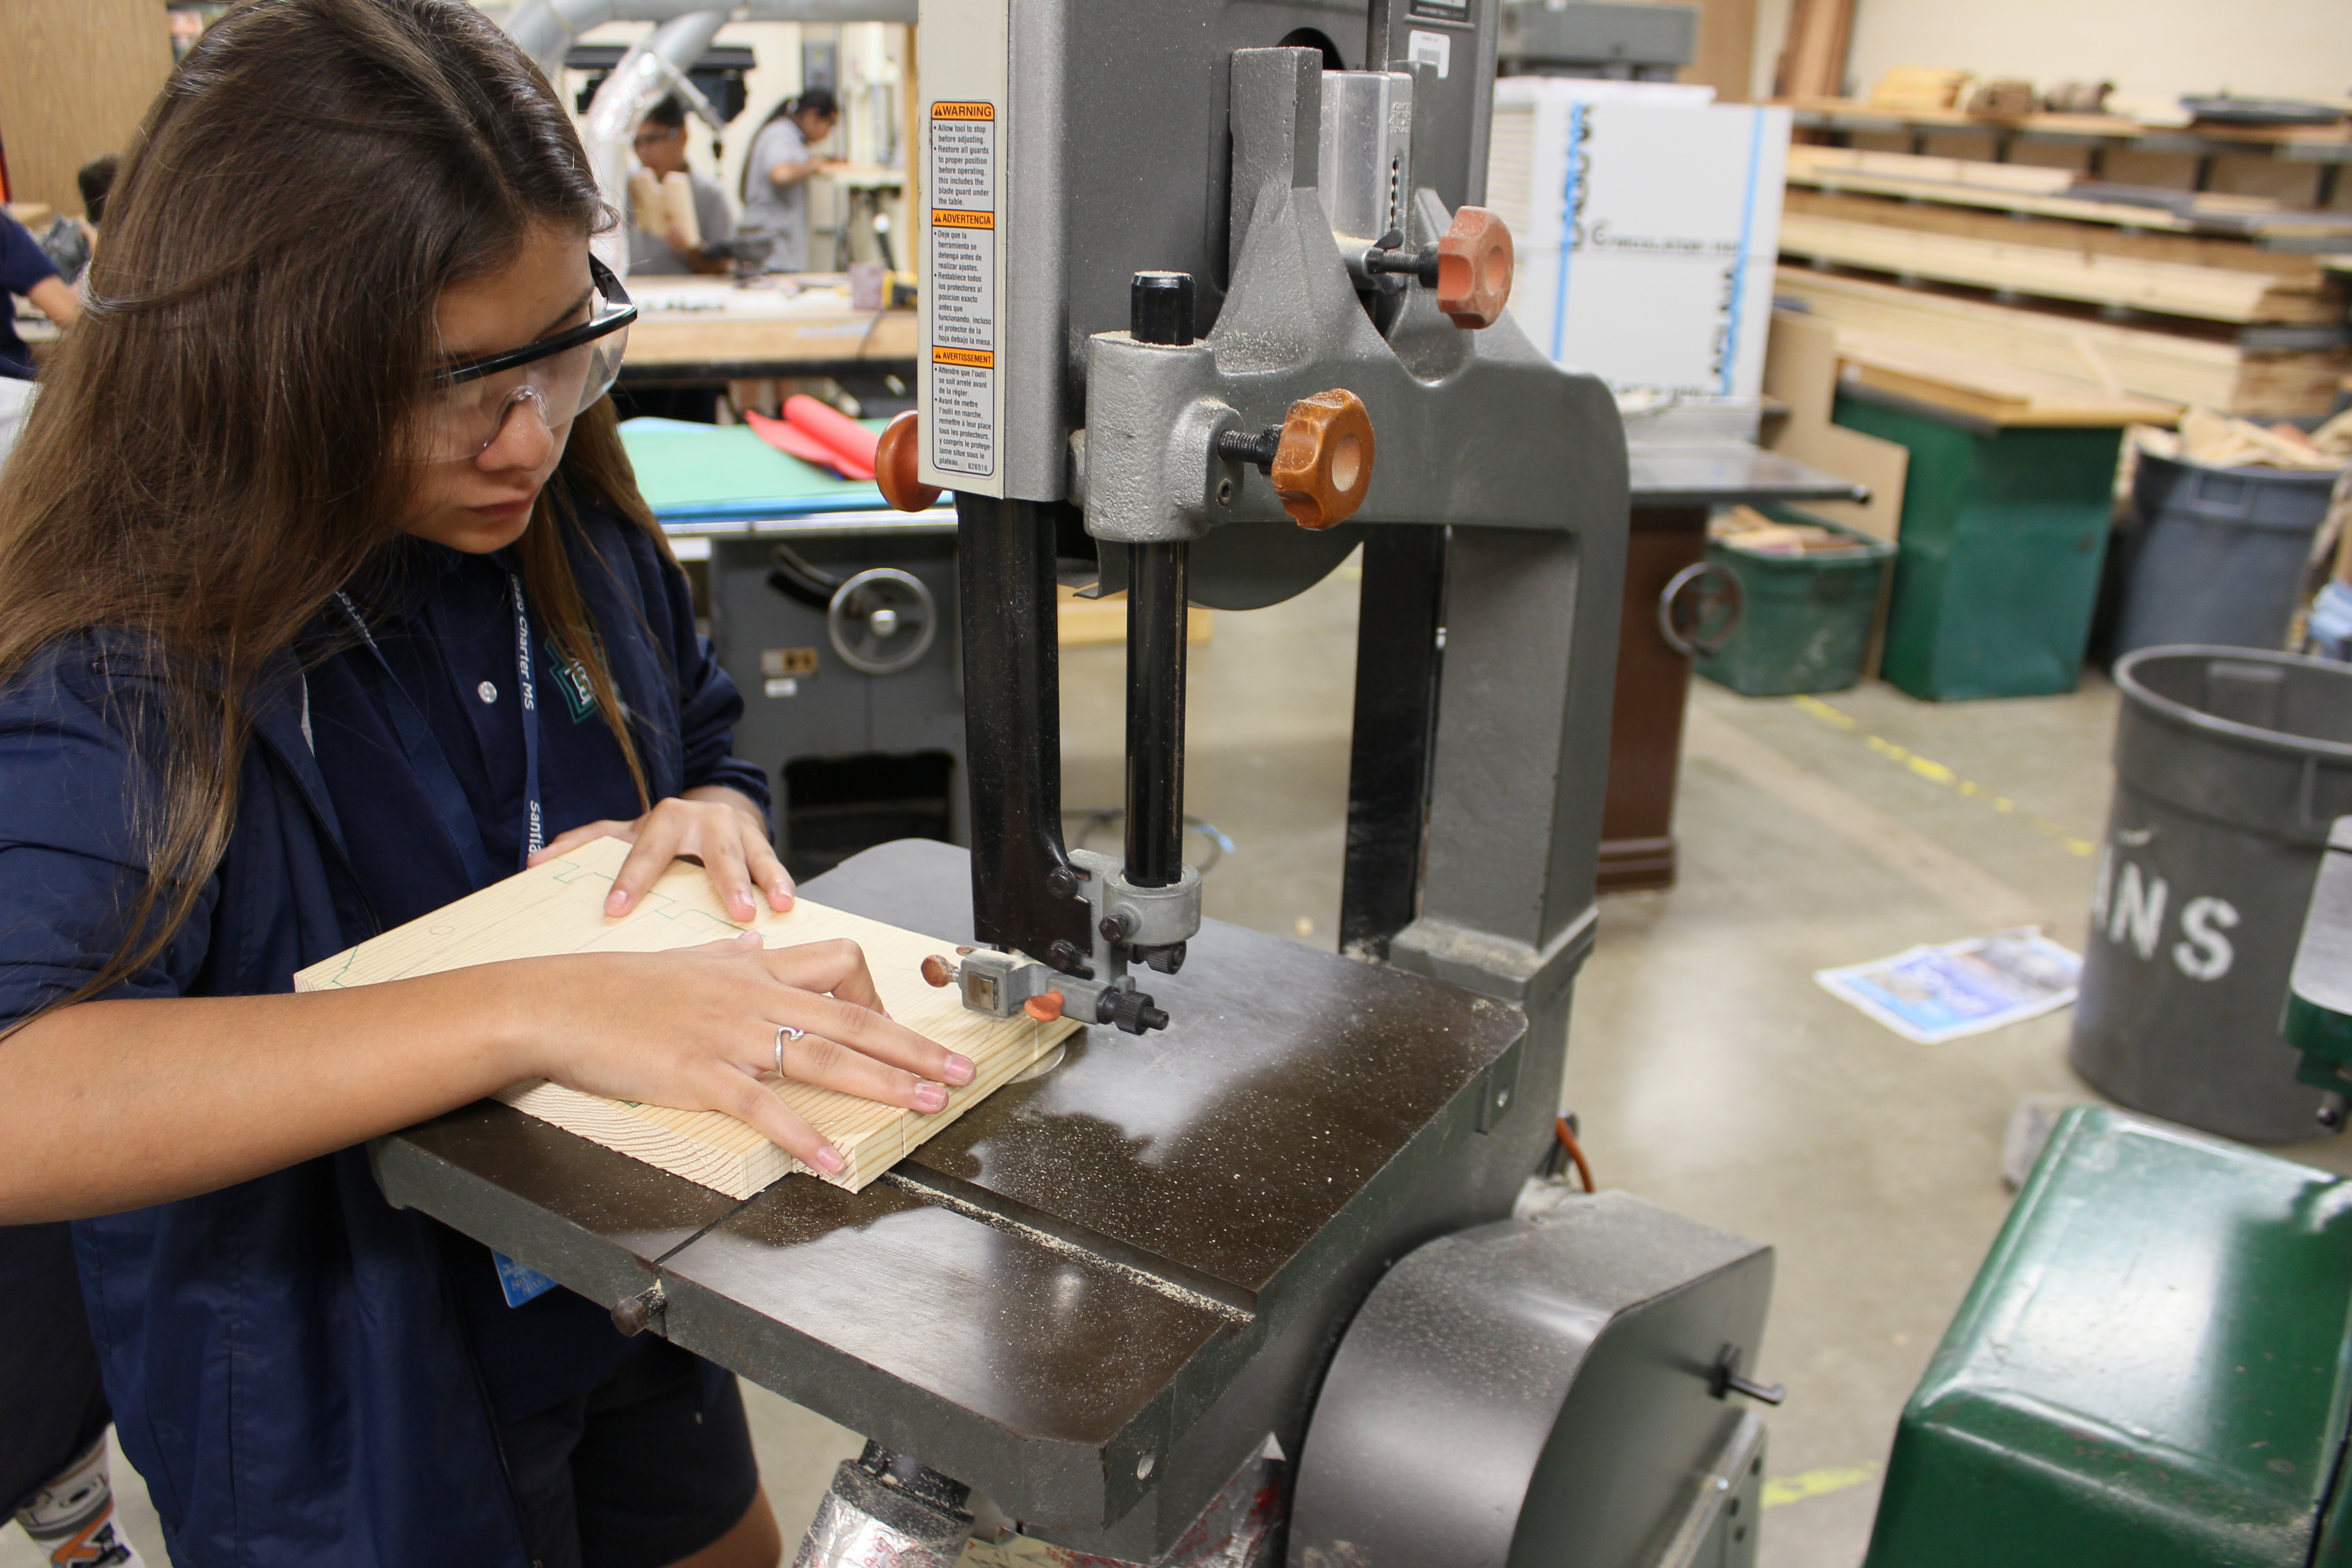 Student working at band saw